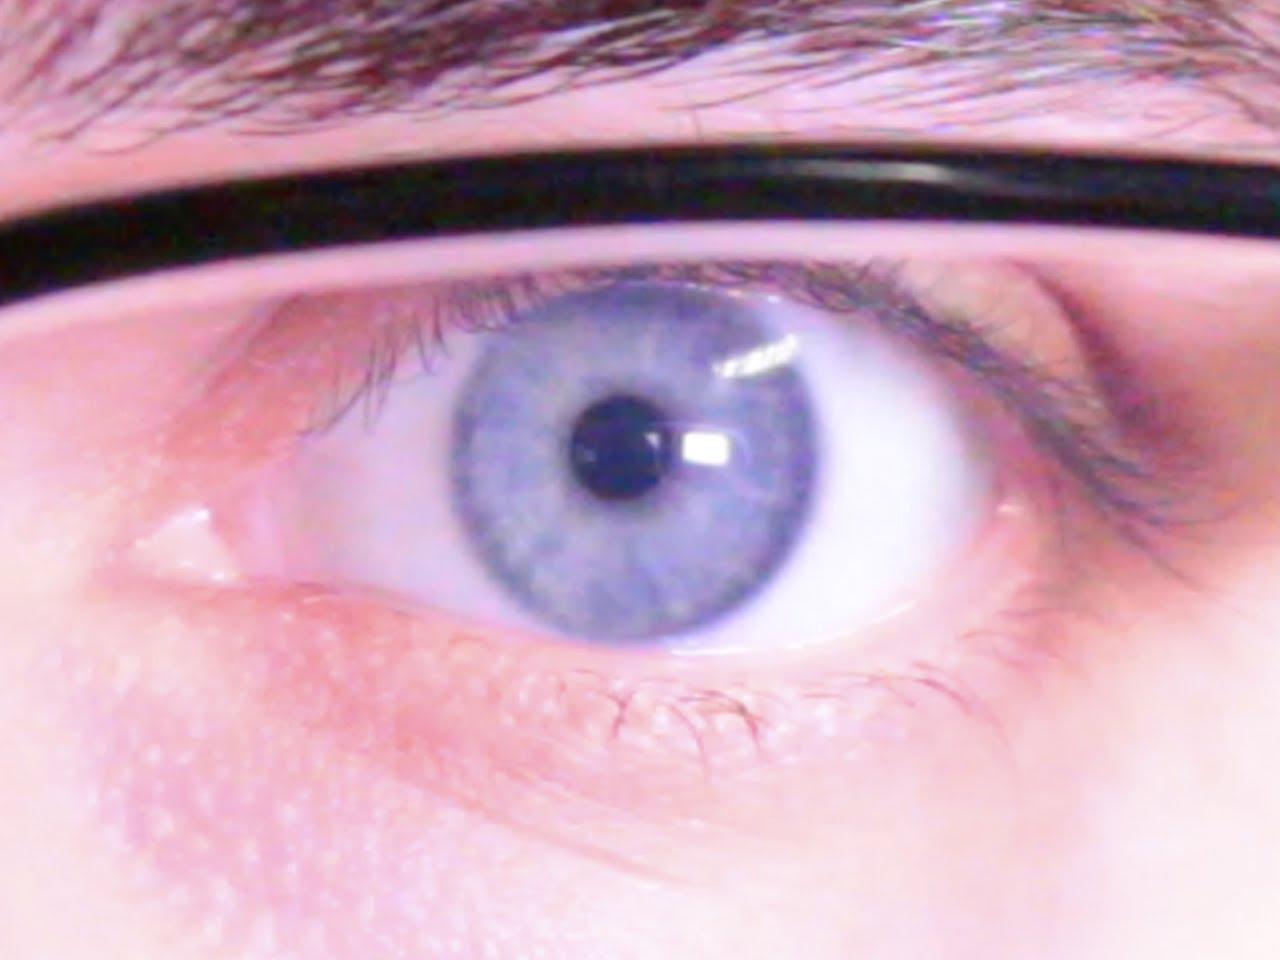 What Is the Resolution of the Eye? by Vsauce